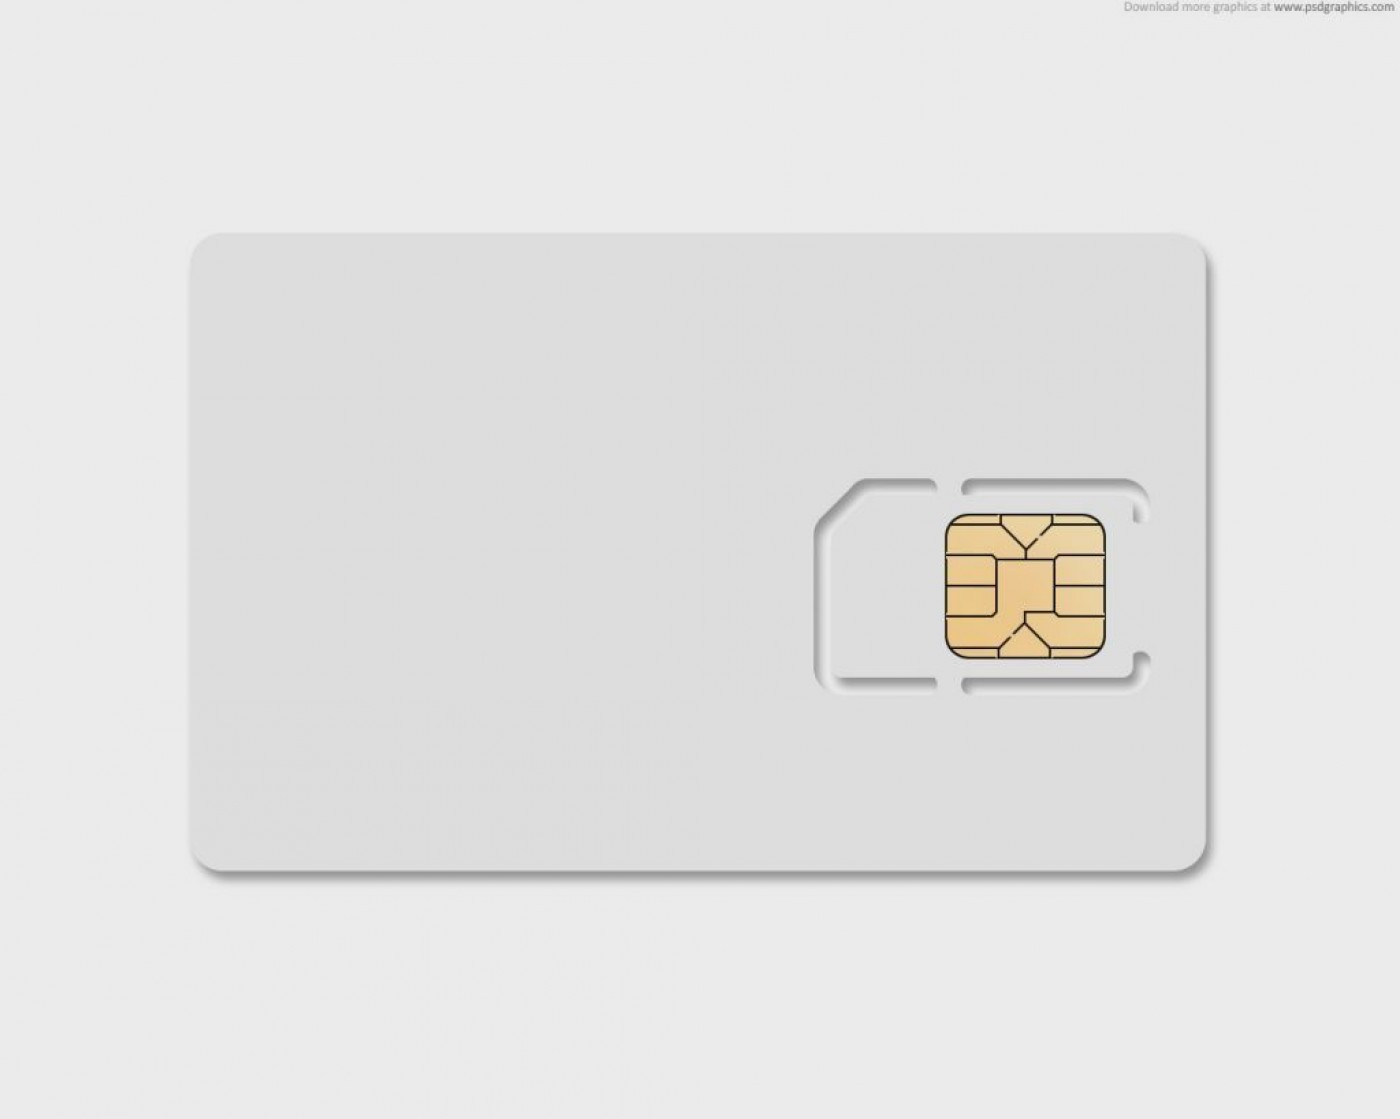 002 Staggering Blank Busines Card Template Photoshop High Resolution  Free Download Psd1400